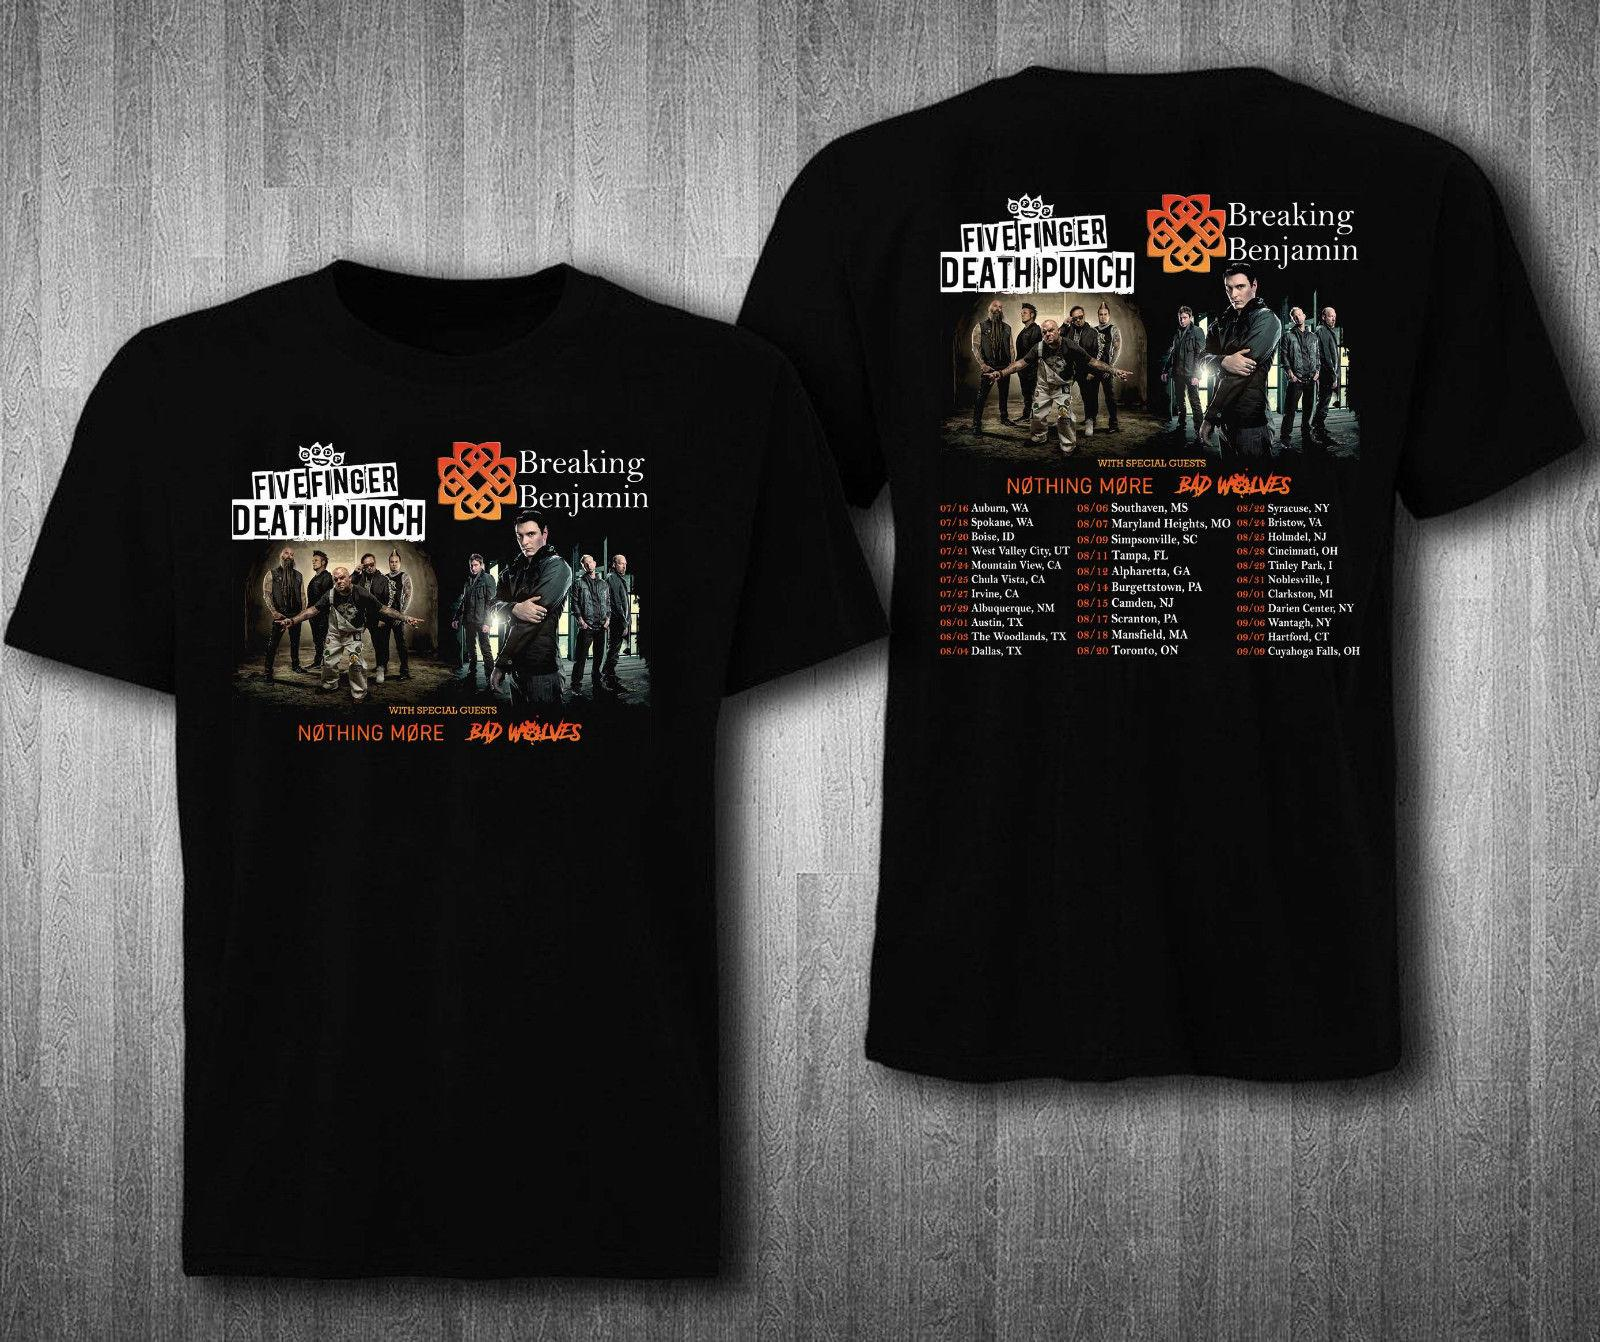 Five Finger Punch With Breaking Benjamin Tour 2018 T Shirt New Fashion Mens Short Sleeve T Shirt Cotton T Shirts T Shirt Humor T Shirt With Shirt From